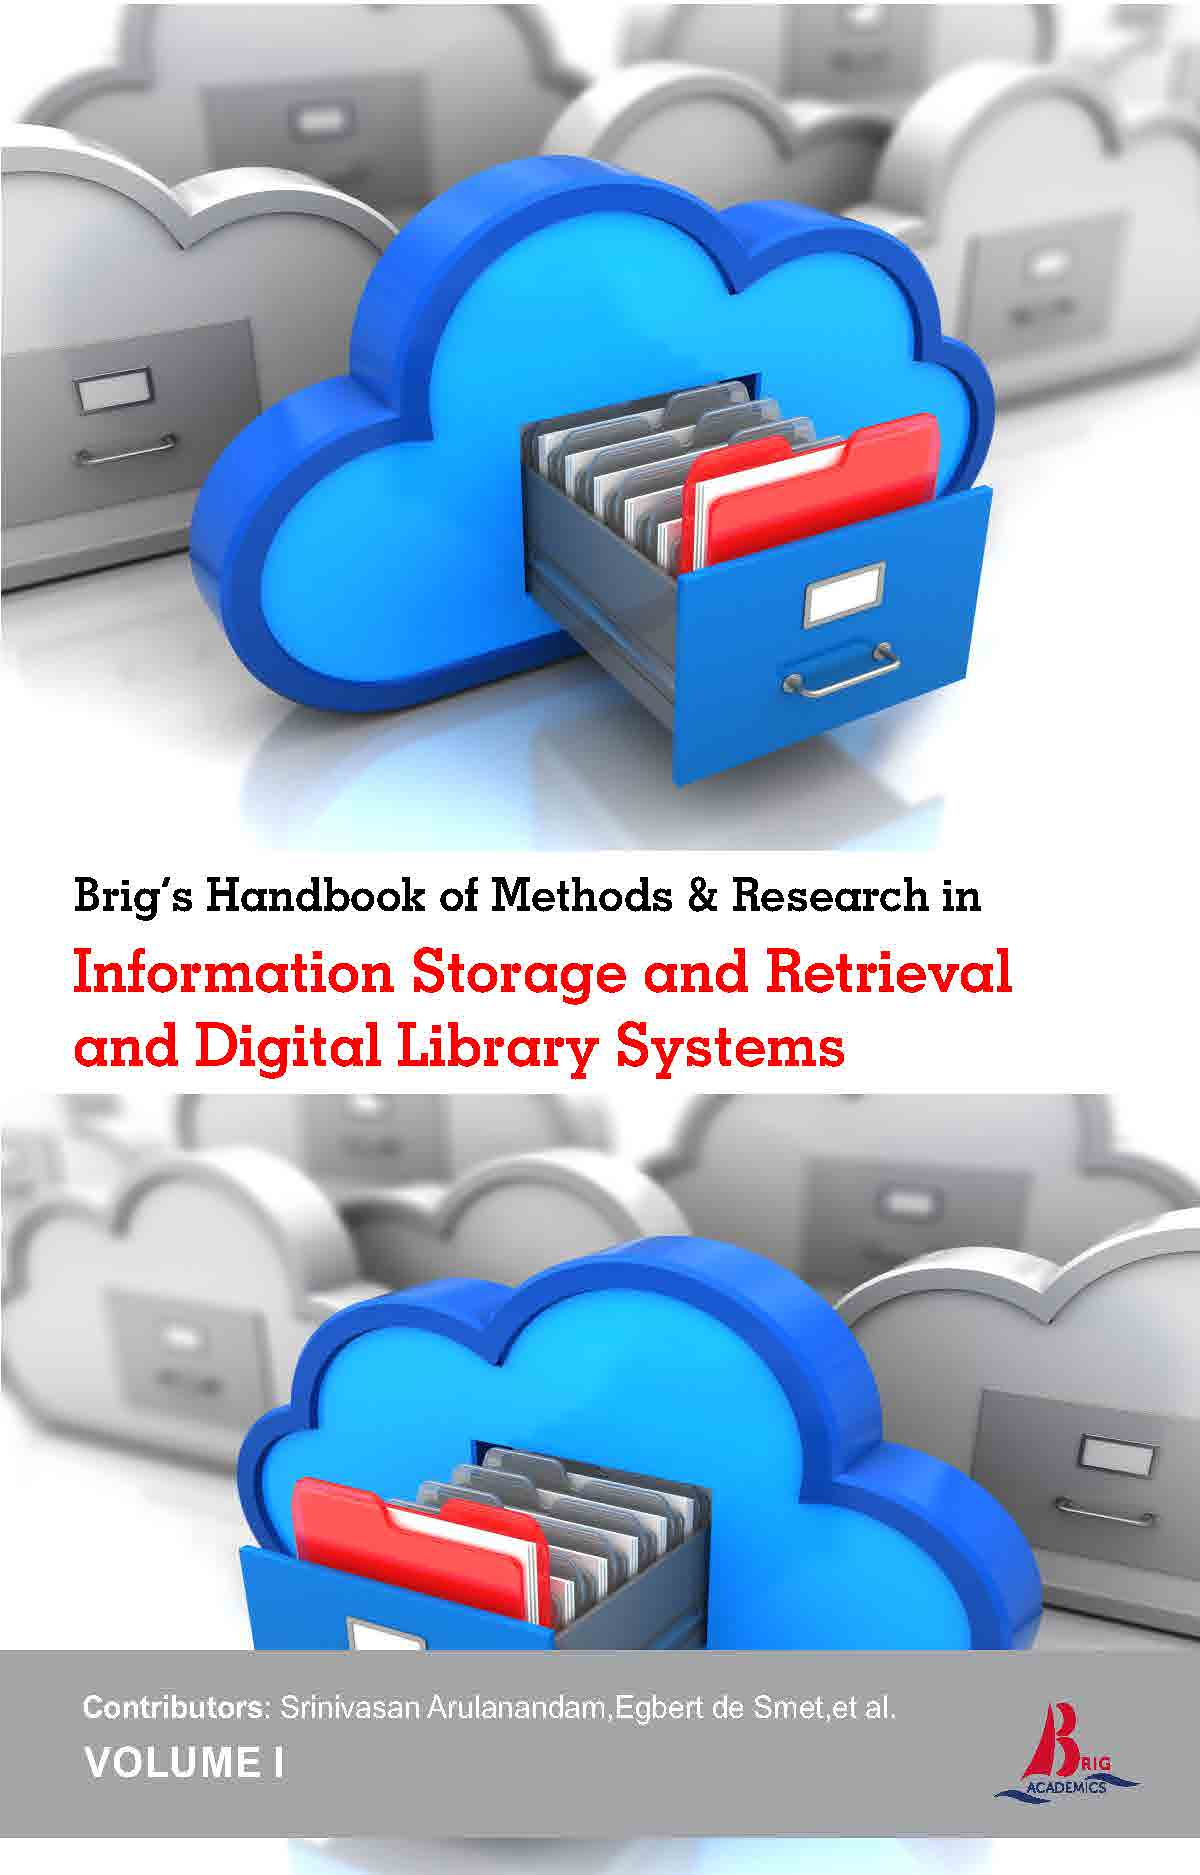 Brig's Handbook of Methods & Research in Information Storage and Retrieval and Digital Library Systems (2 Volumes)